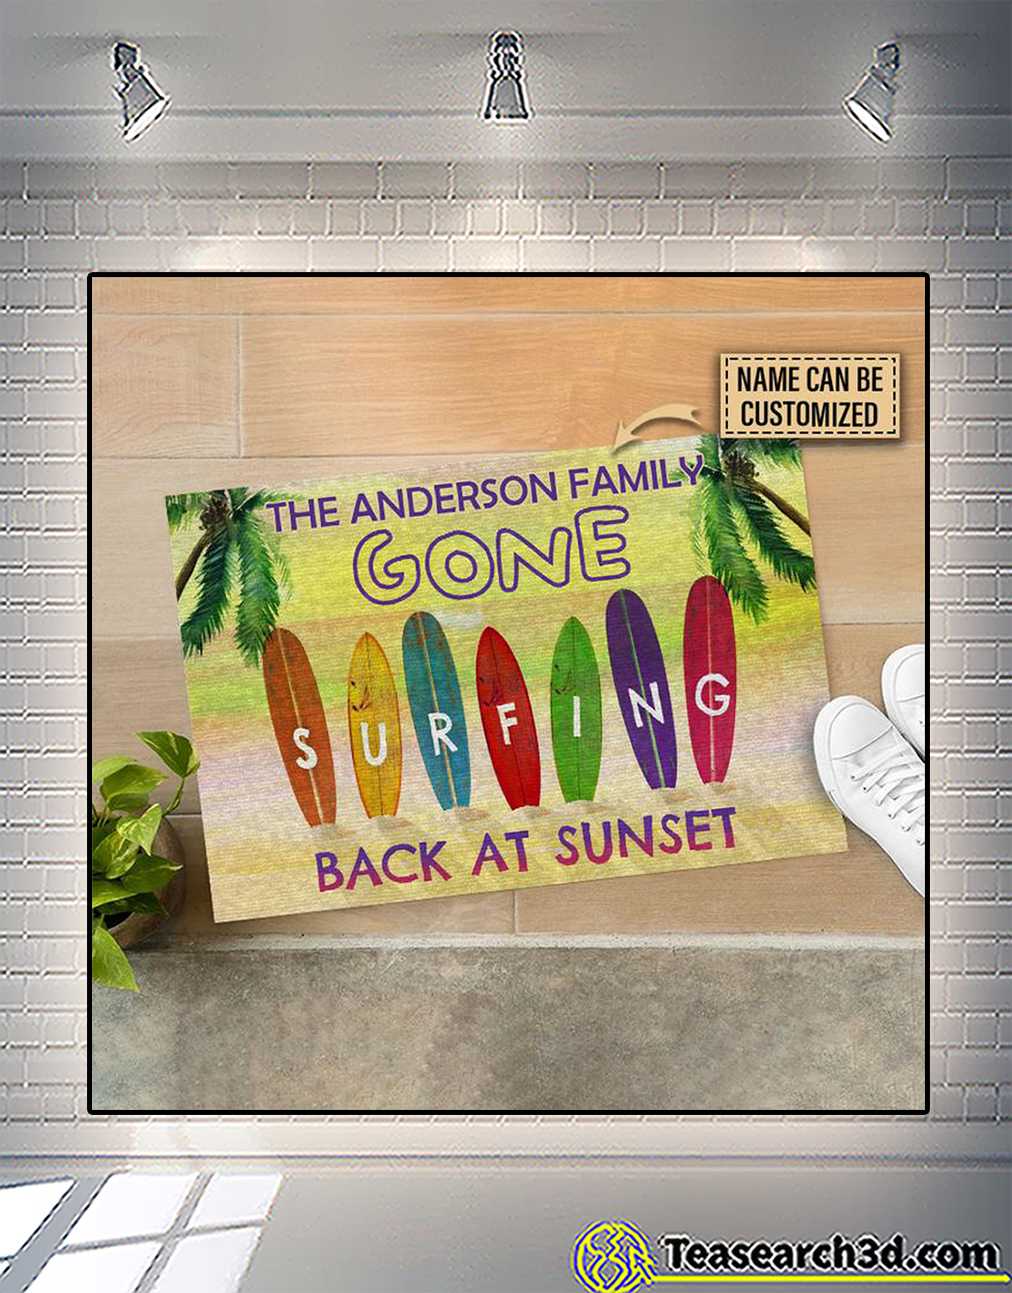 Personalized surfing back at sunset customized doormat